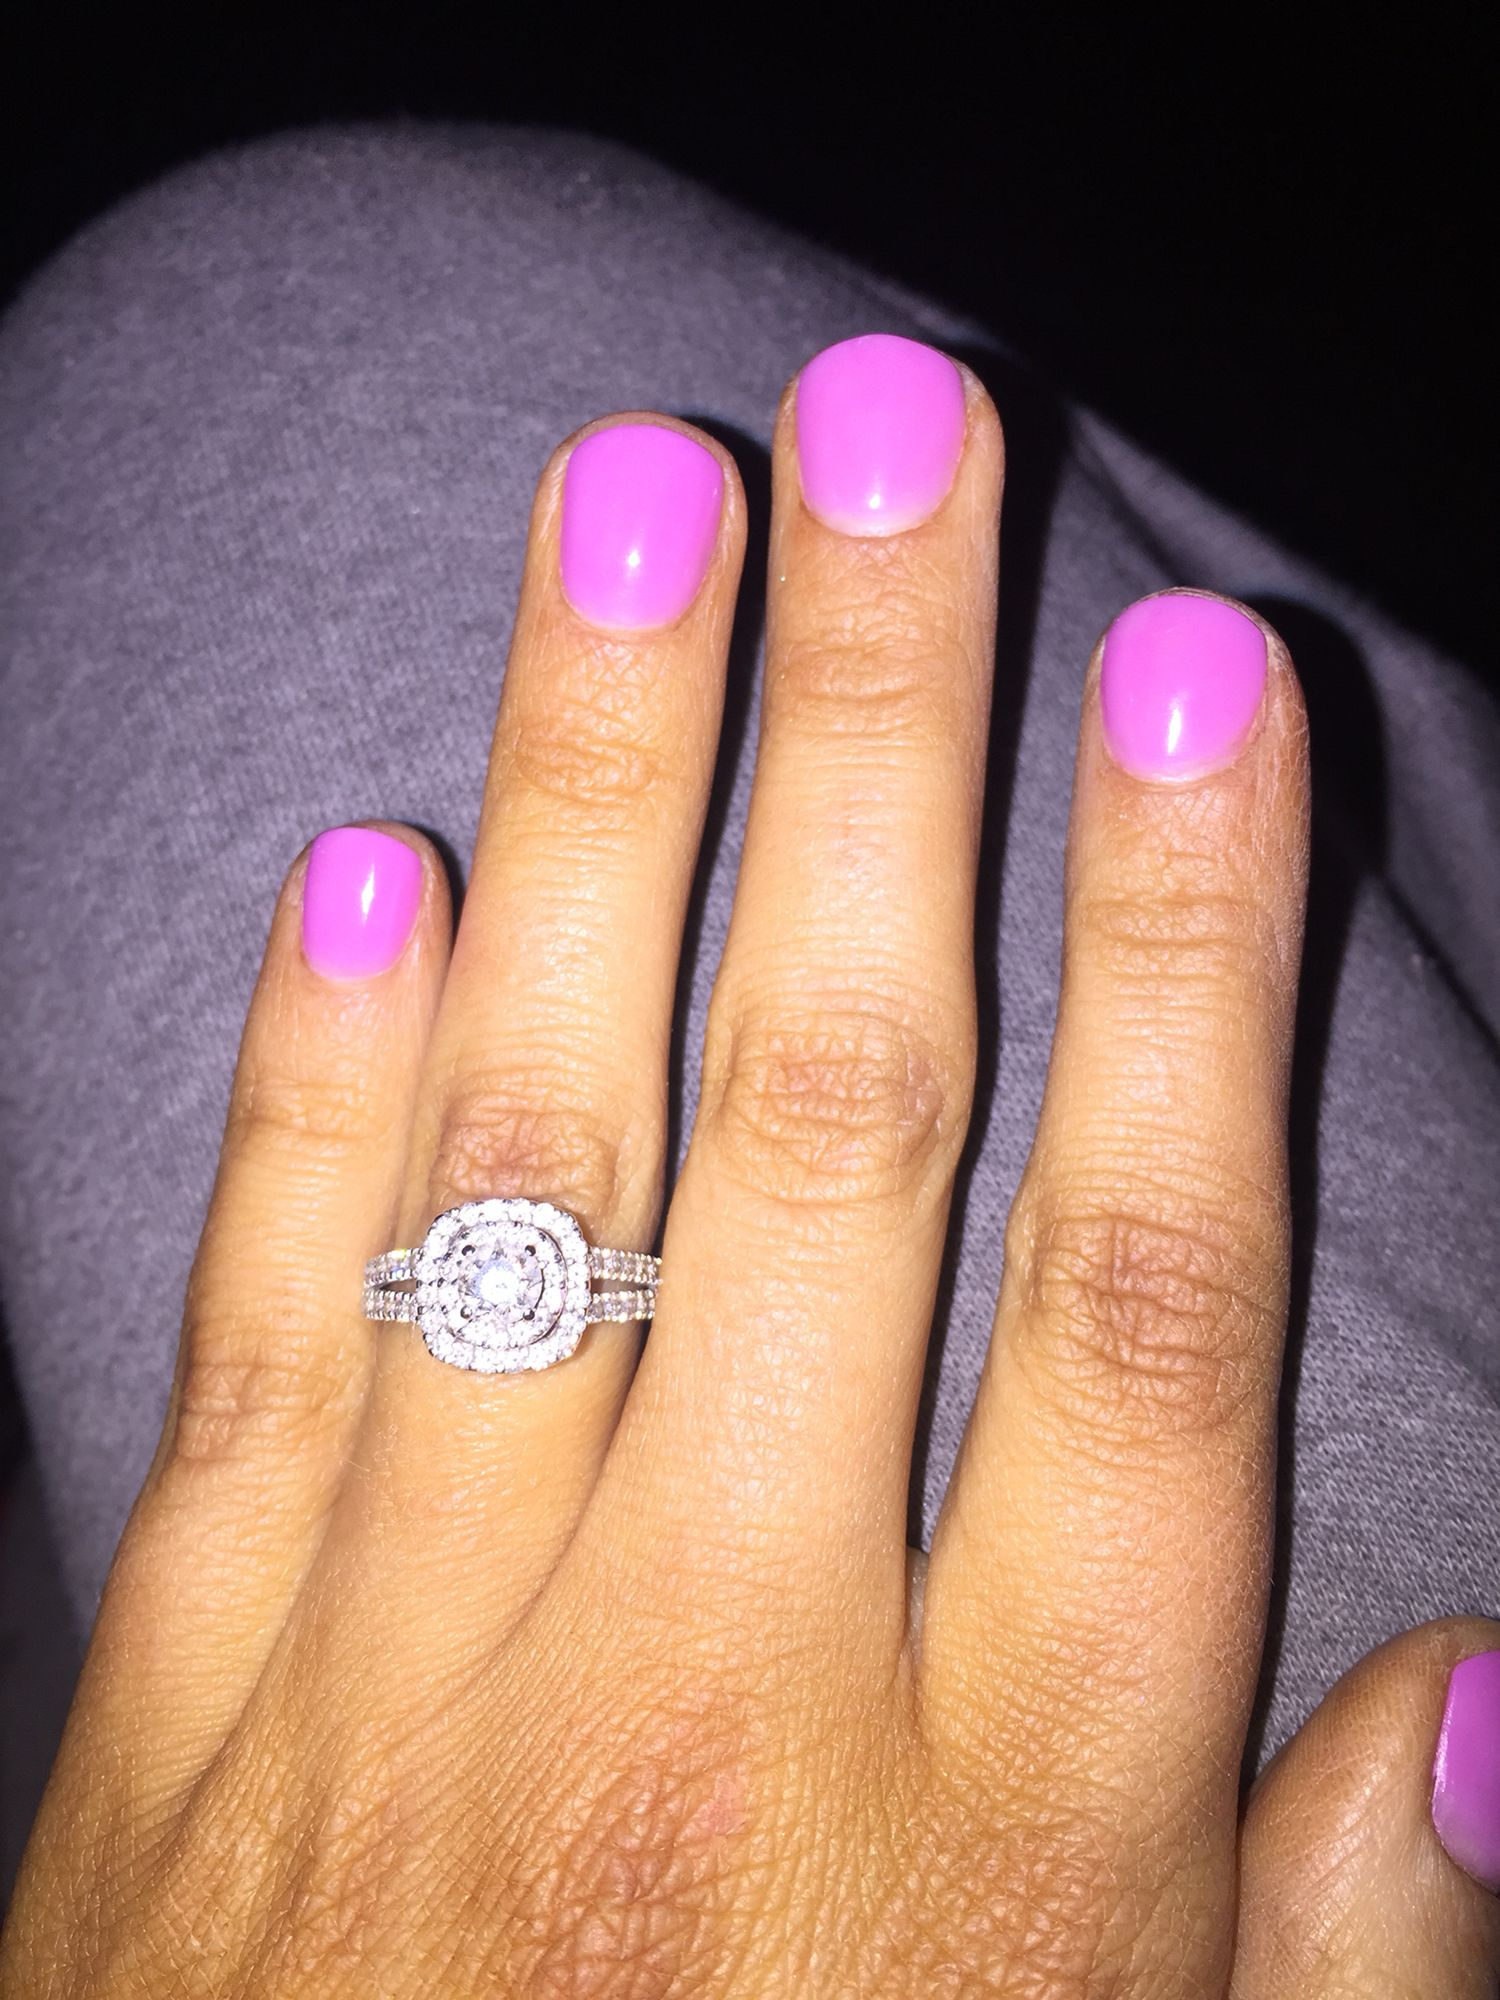 Nexgen Nails Is Where It S At If You Ve Tried Gel And Can T Seem To Keep Them From Chipping And Acrylics A Nexgen Nails Nexgen Nails Colors Spring Break Nails